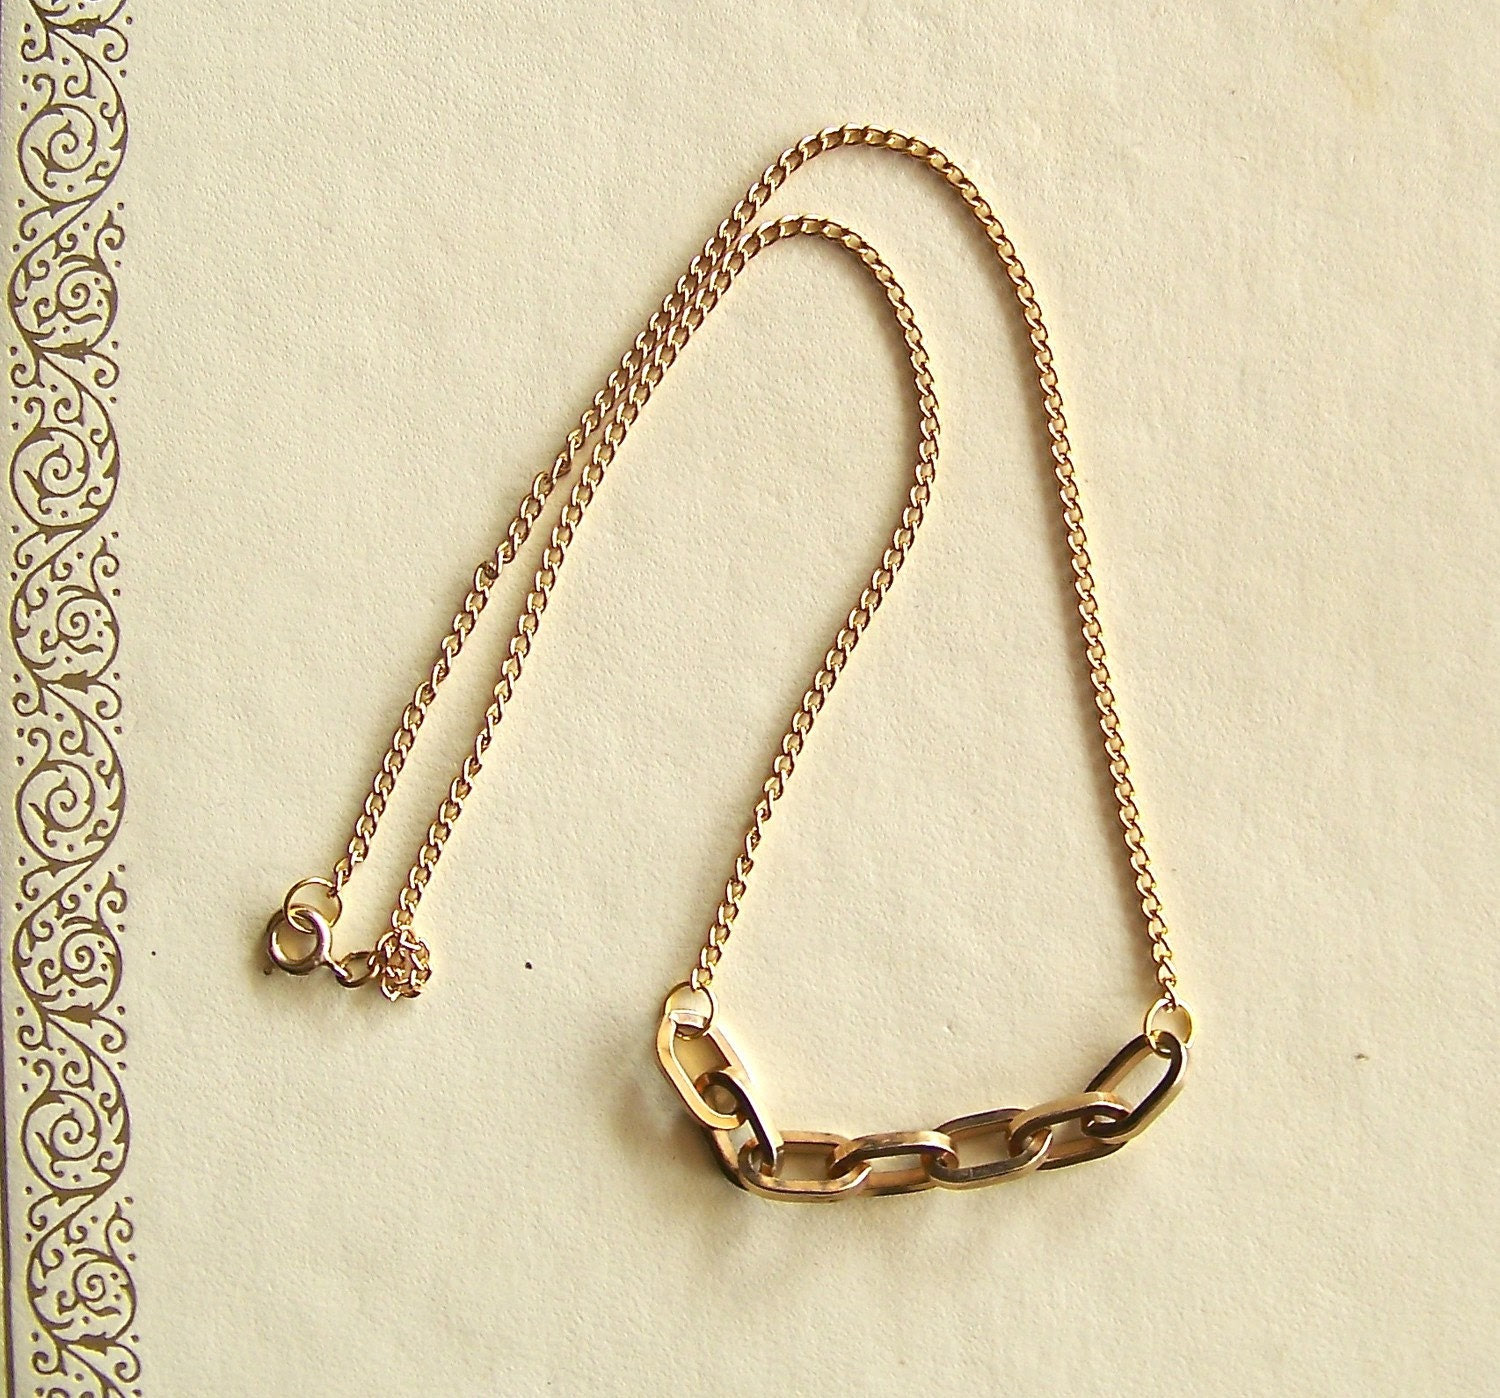 Bertoia necklace - mid century modern - vintage and recycled jewelry